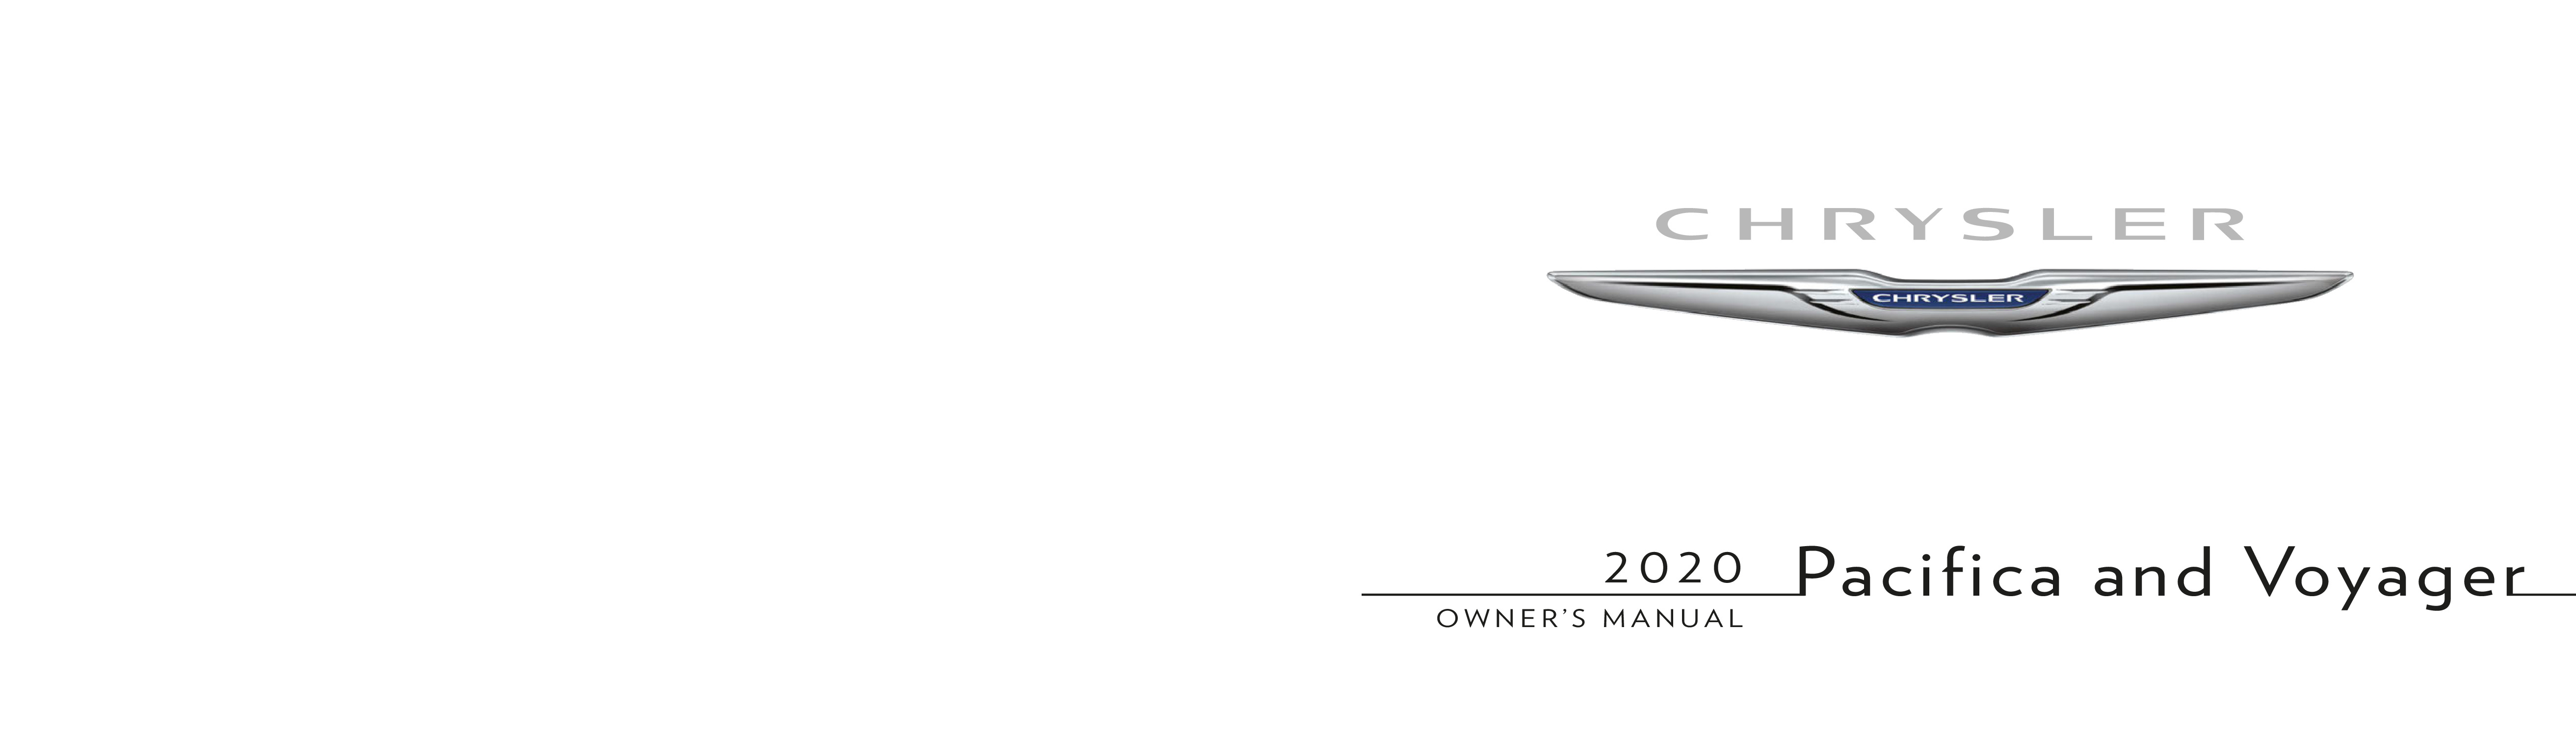 2020 Chrysler Pacifica Hybrid owners manual